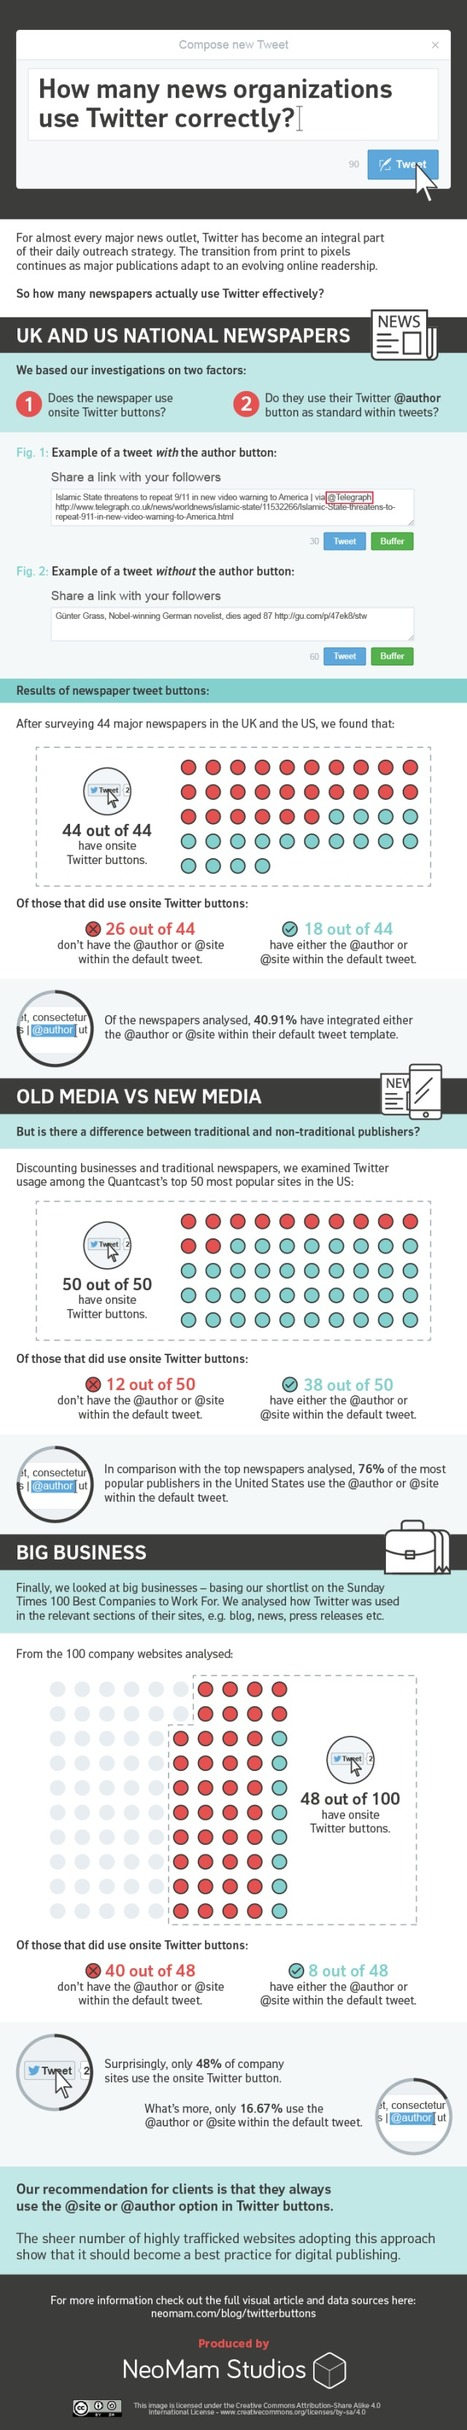 Are News Organizations Using Twitter Effectively? #Infographic | MarketingHits | Scoop.it